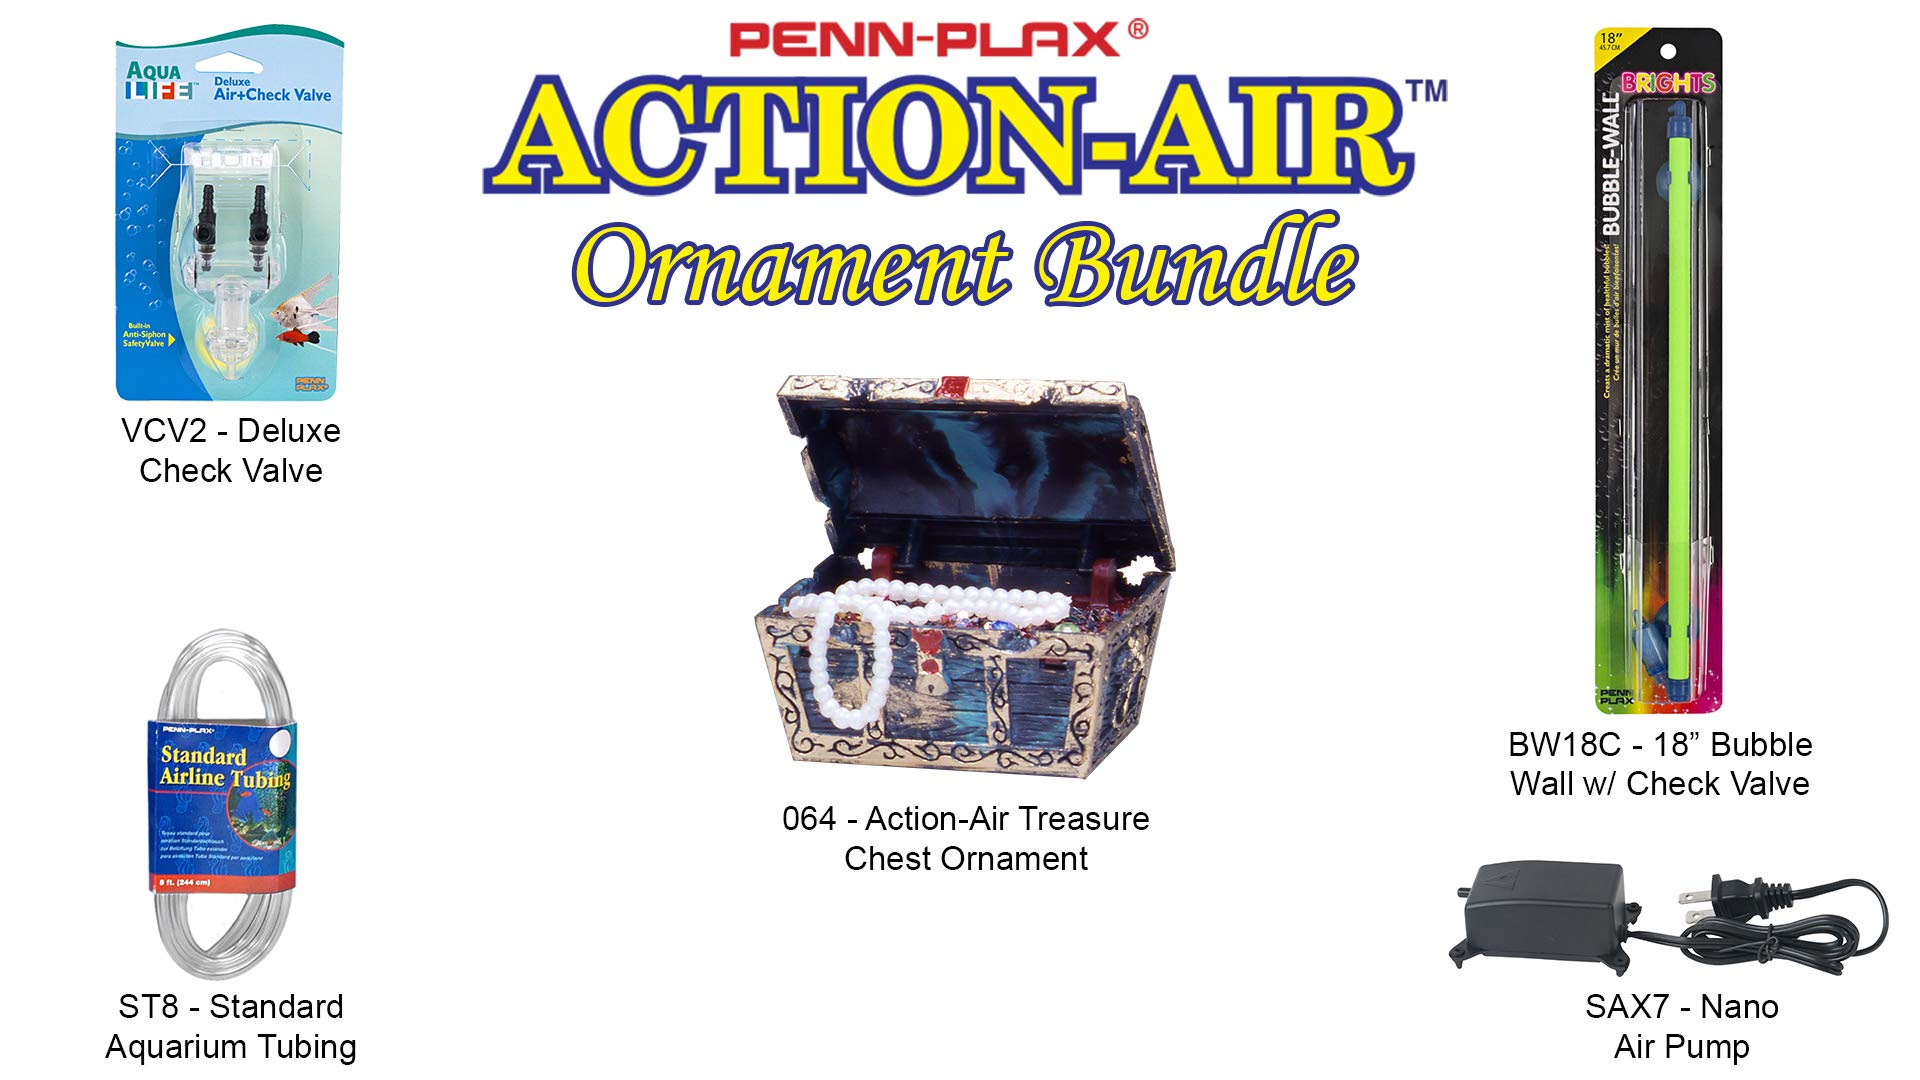 Penn Plax Action-Air Ornament Bundle Gift Set - Comes with Air Pump, Tubing, Bubble Wall, Gang Valve, and Action Ornament for Your Aquarium